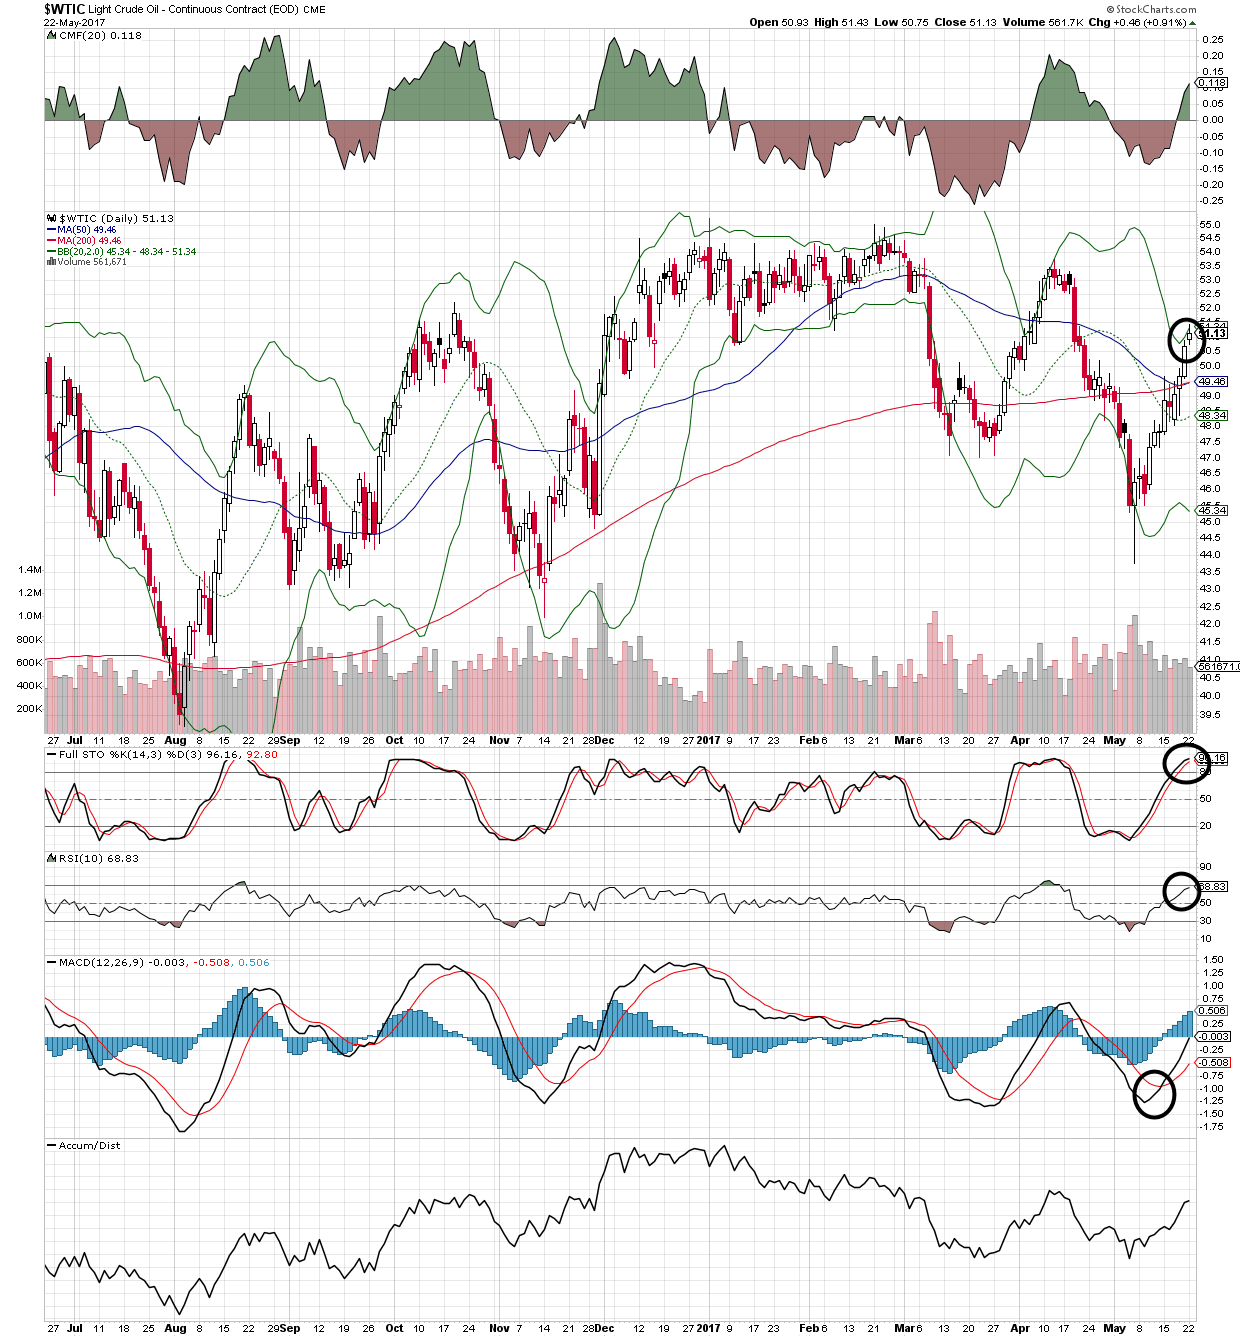 WTIC WTI crude oil daily chart showing near overbought levels on the momentum indicators - loonie wti crude oil